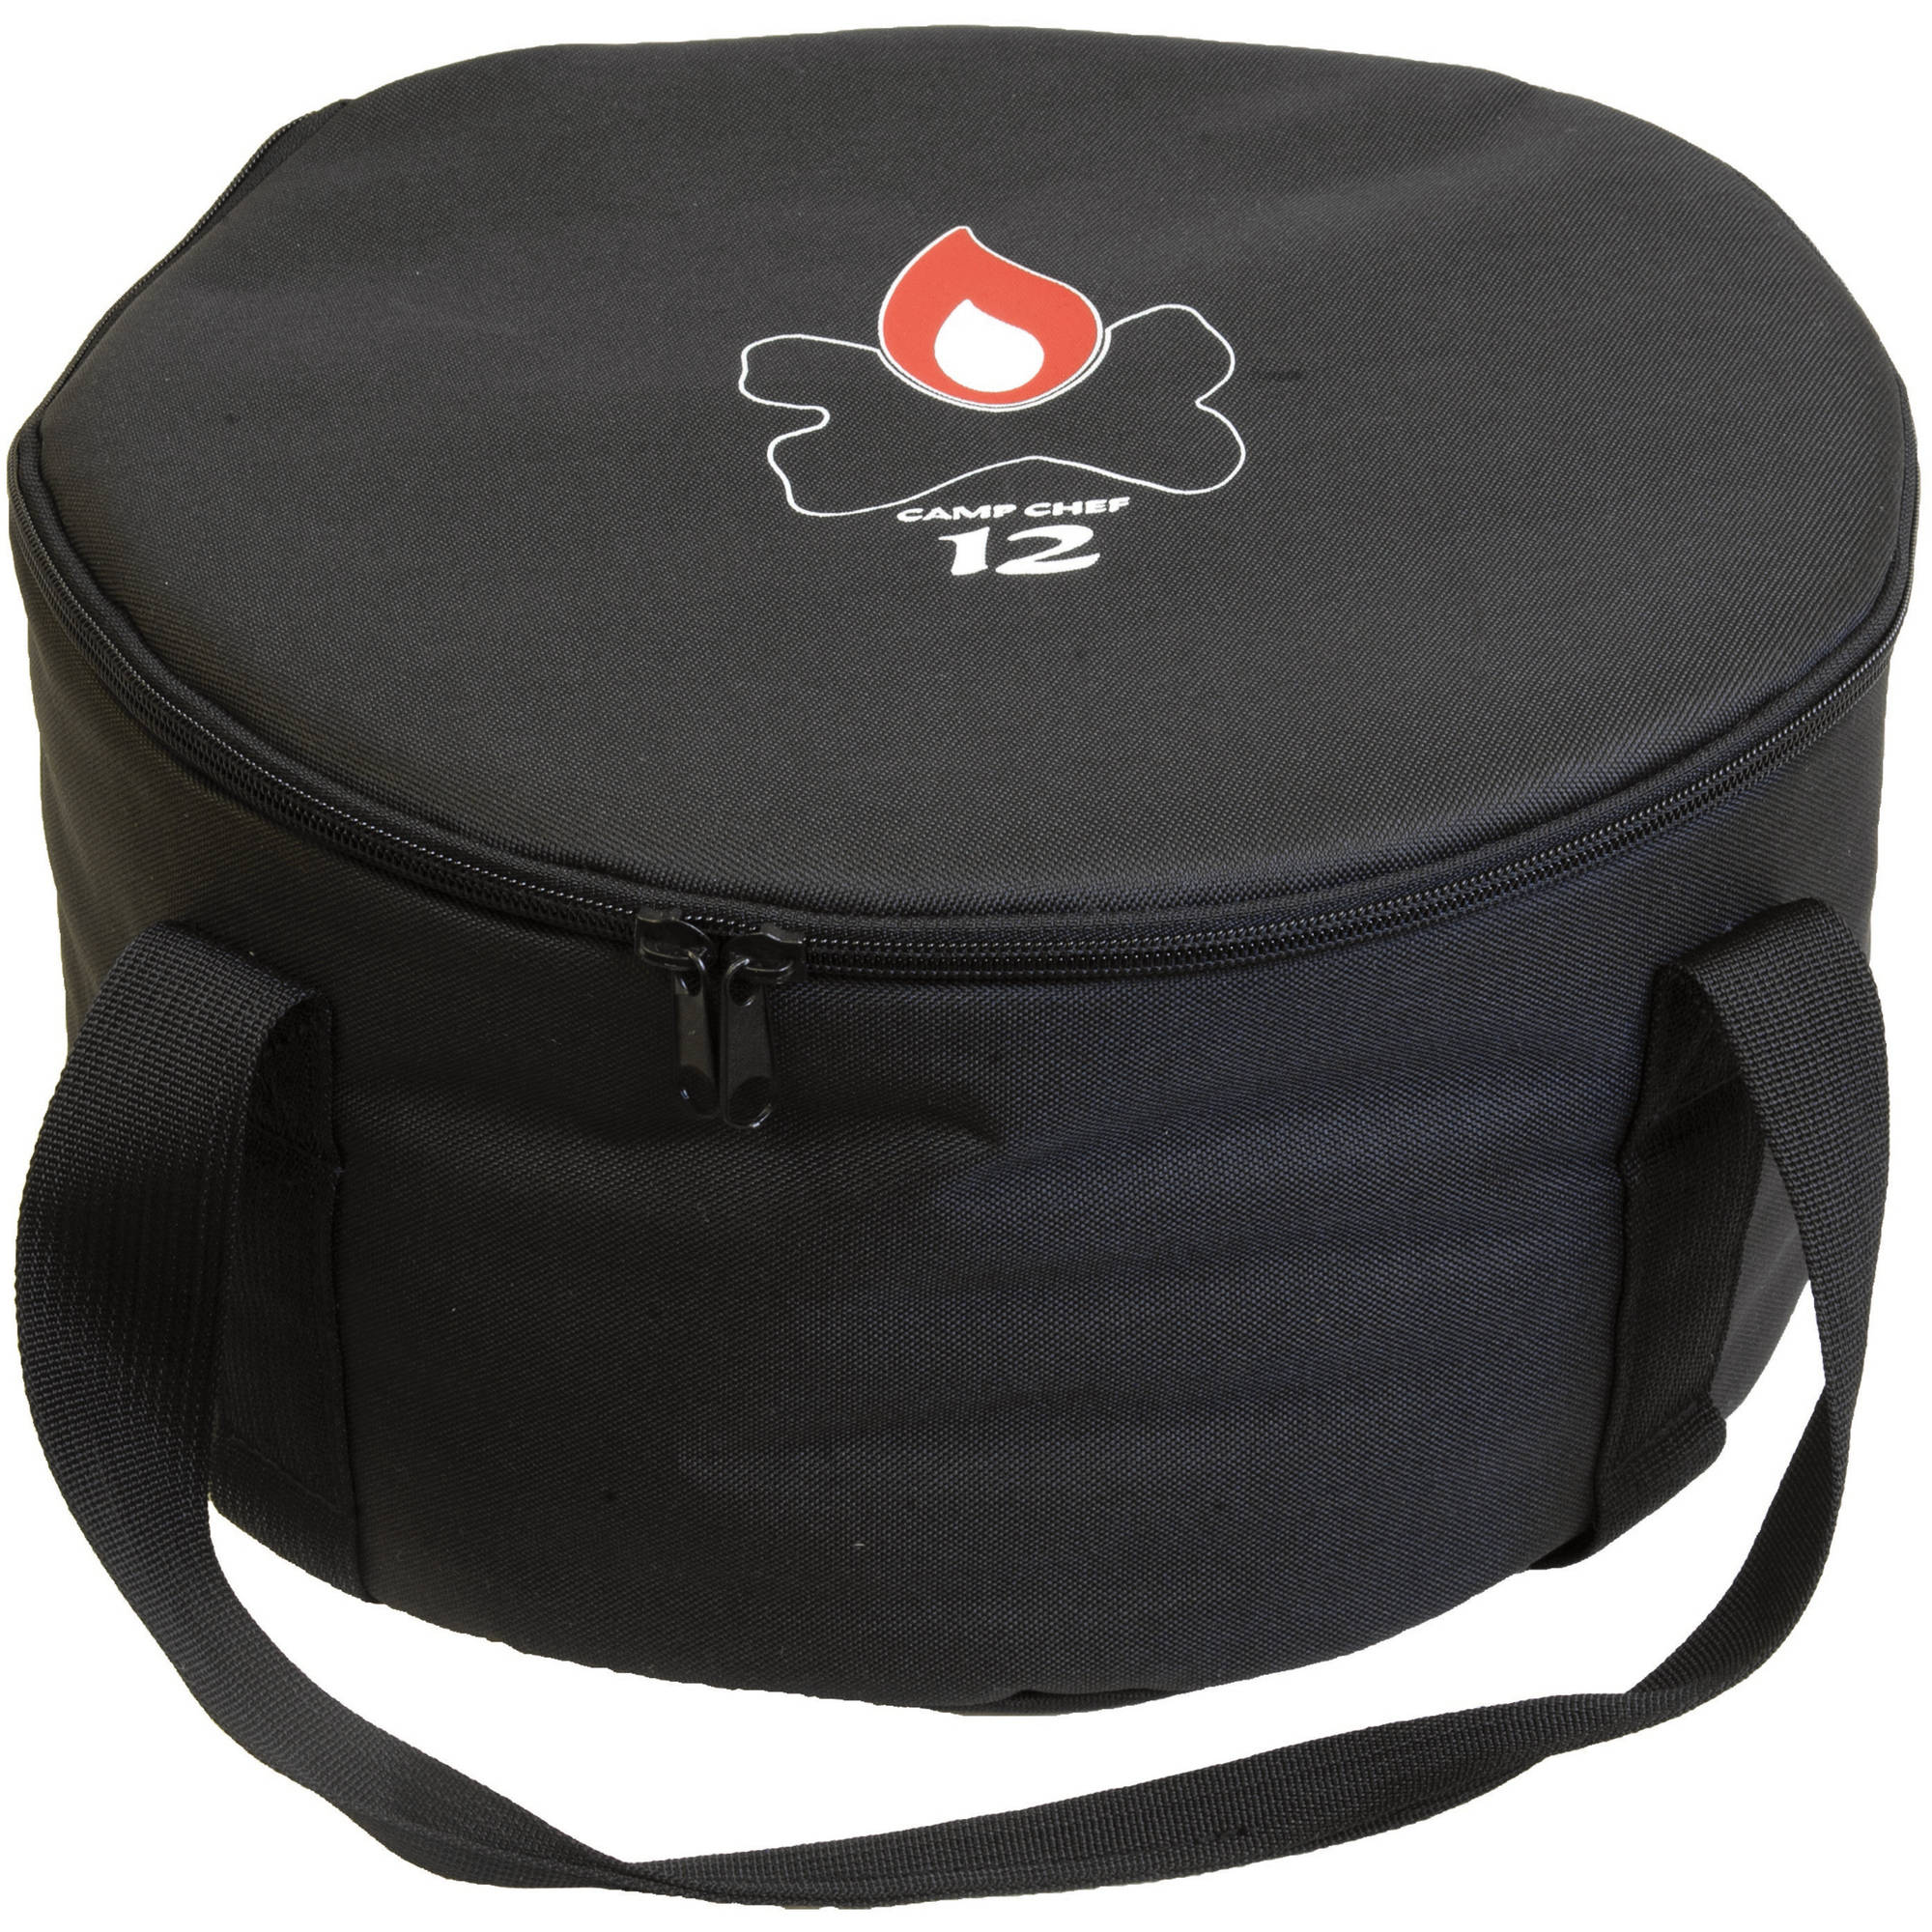 "Camp Chef 12"" Dutch Oven Carry Bag"